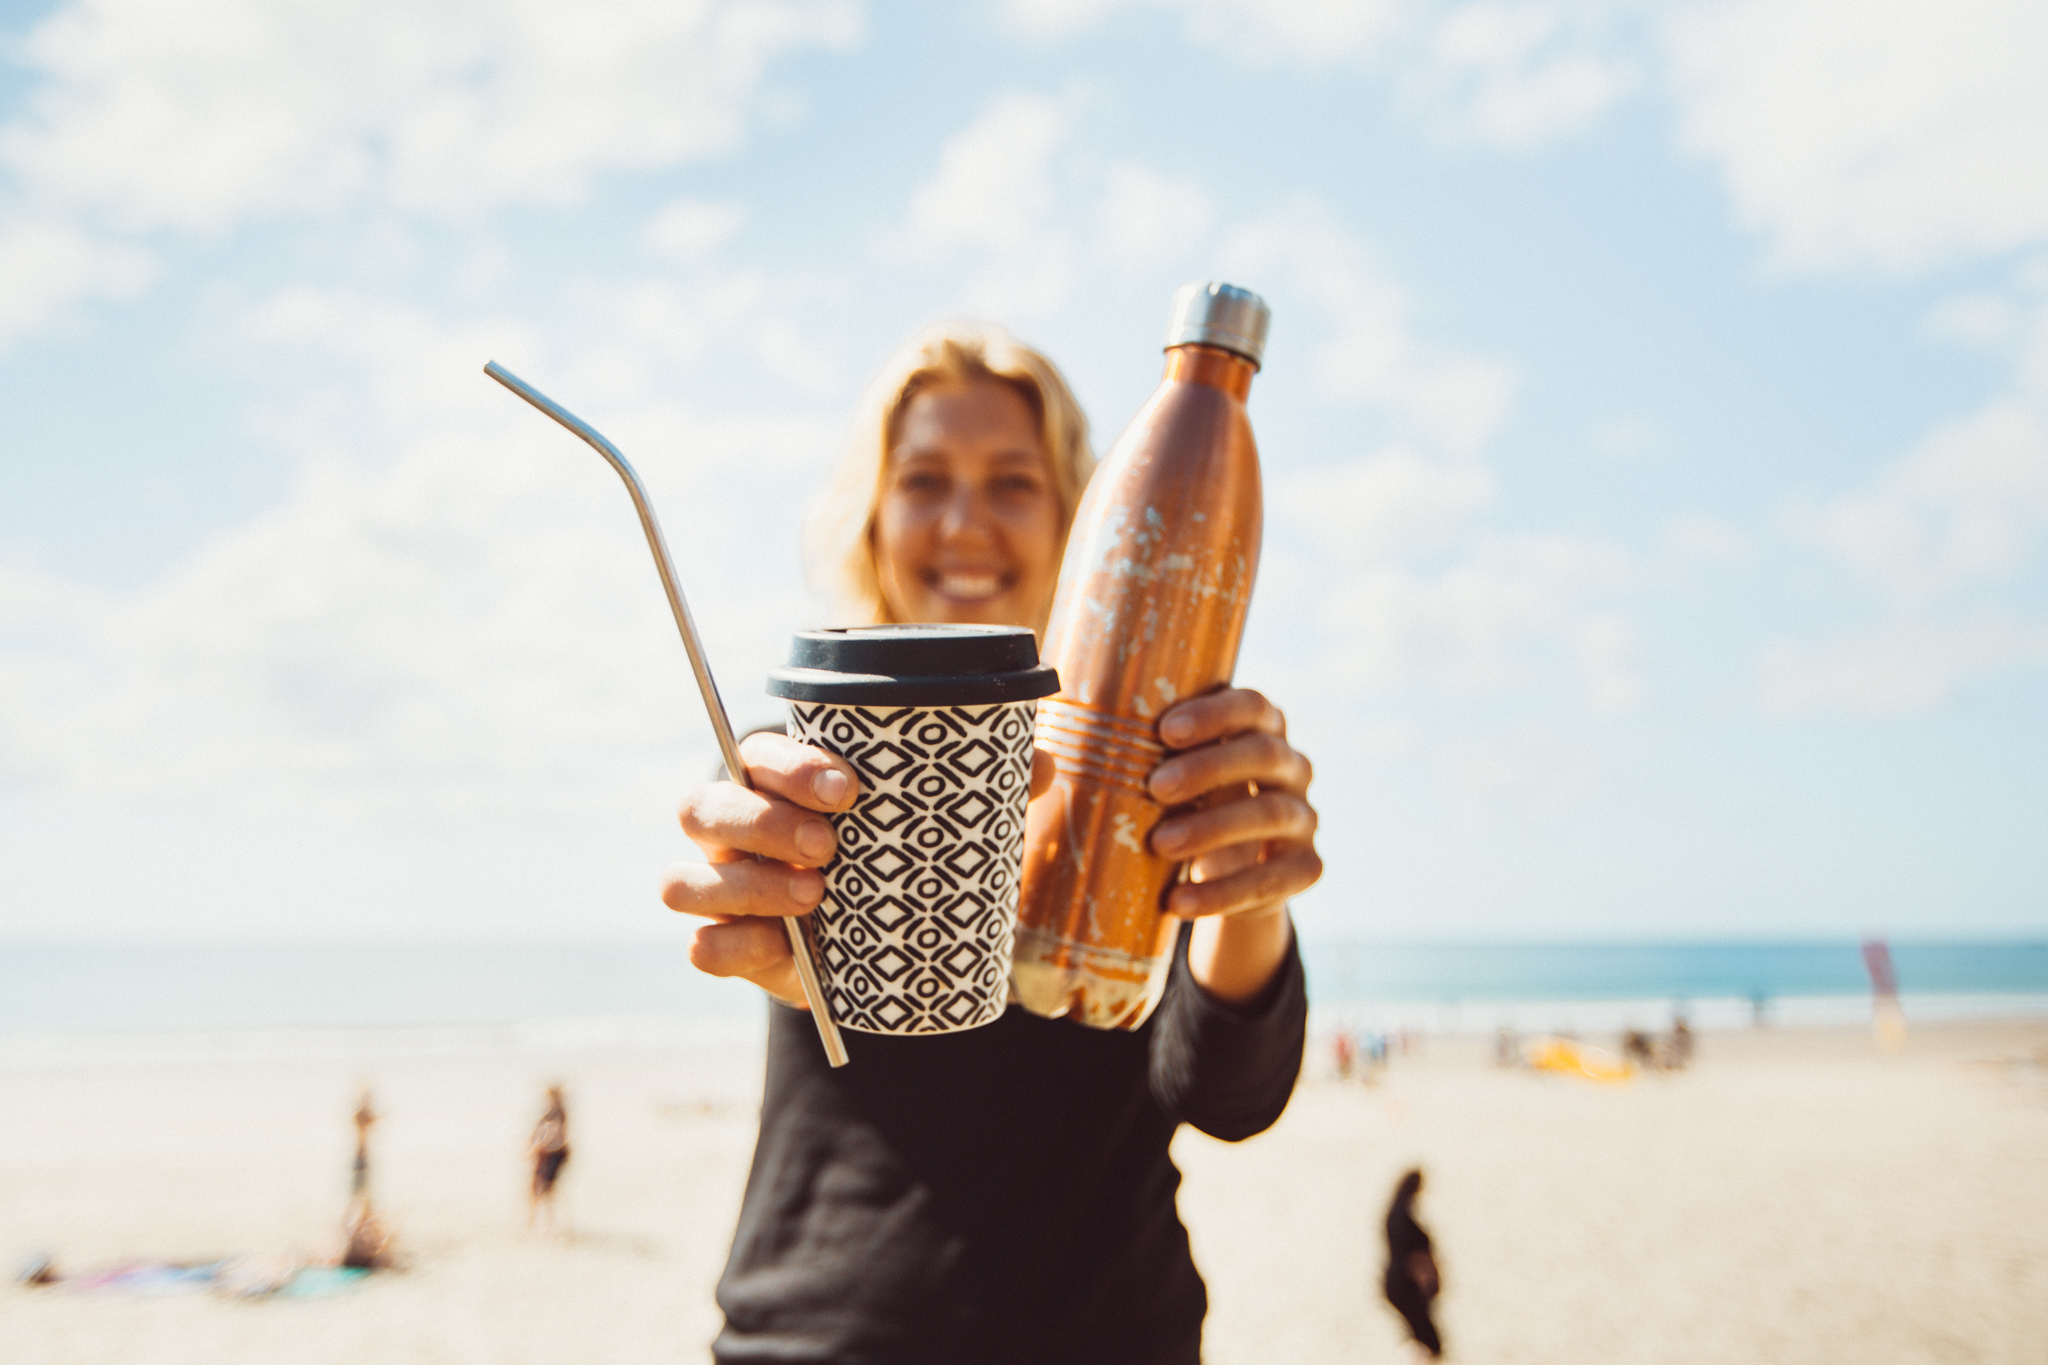 It's not that hard to go single-use plastic free! Purchase a metal straw, ceramic coffee cup or metal water bottle, and say no to plastic. Reduce your impact!  Photograph - Dane Scott Creative.